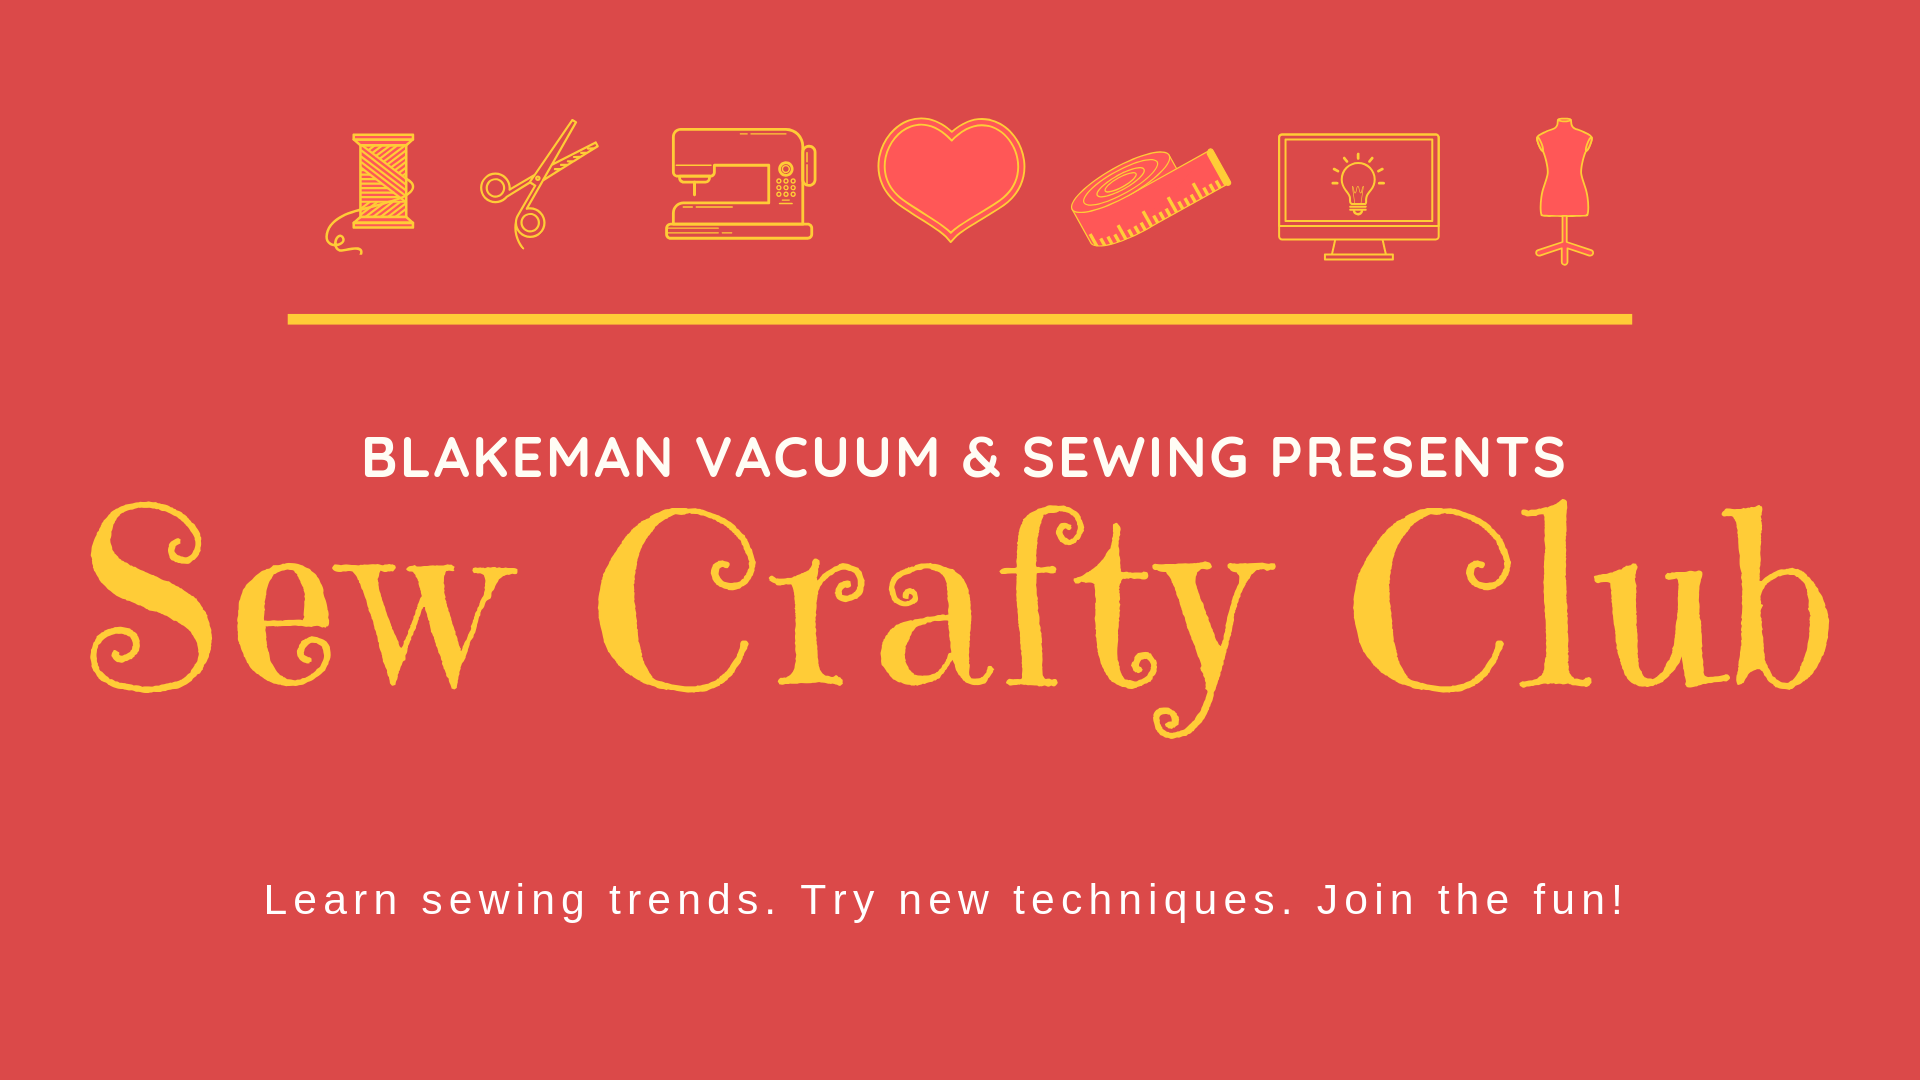 Sew Crafty Club 2019 Annual Membership